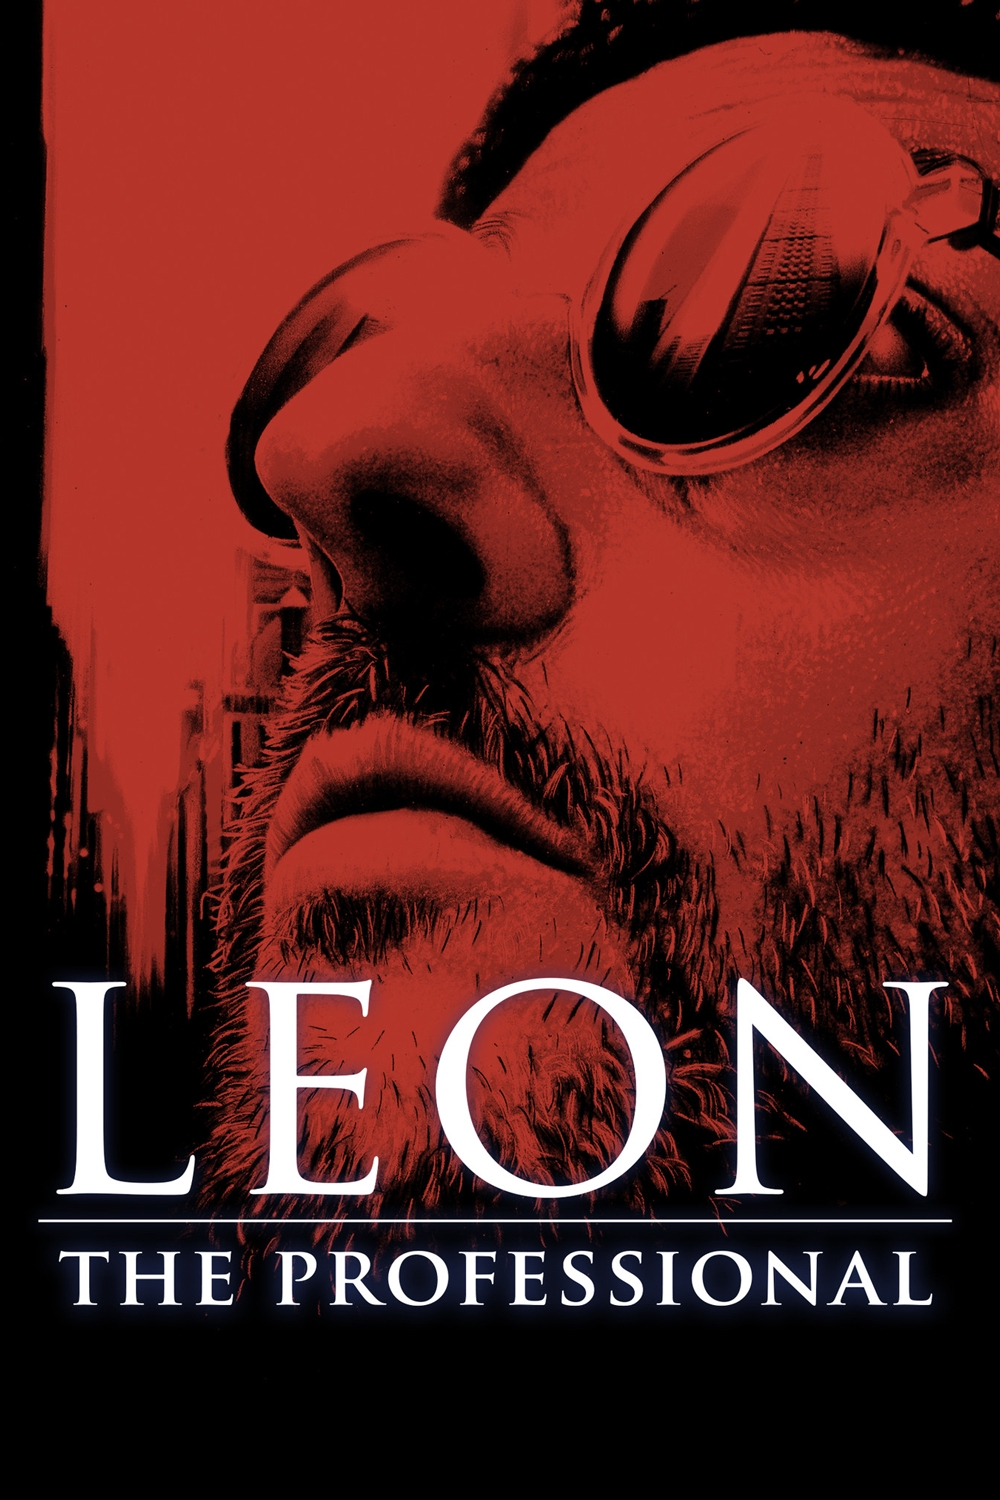 where can i watch leon the professional online for free